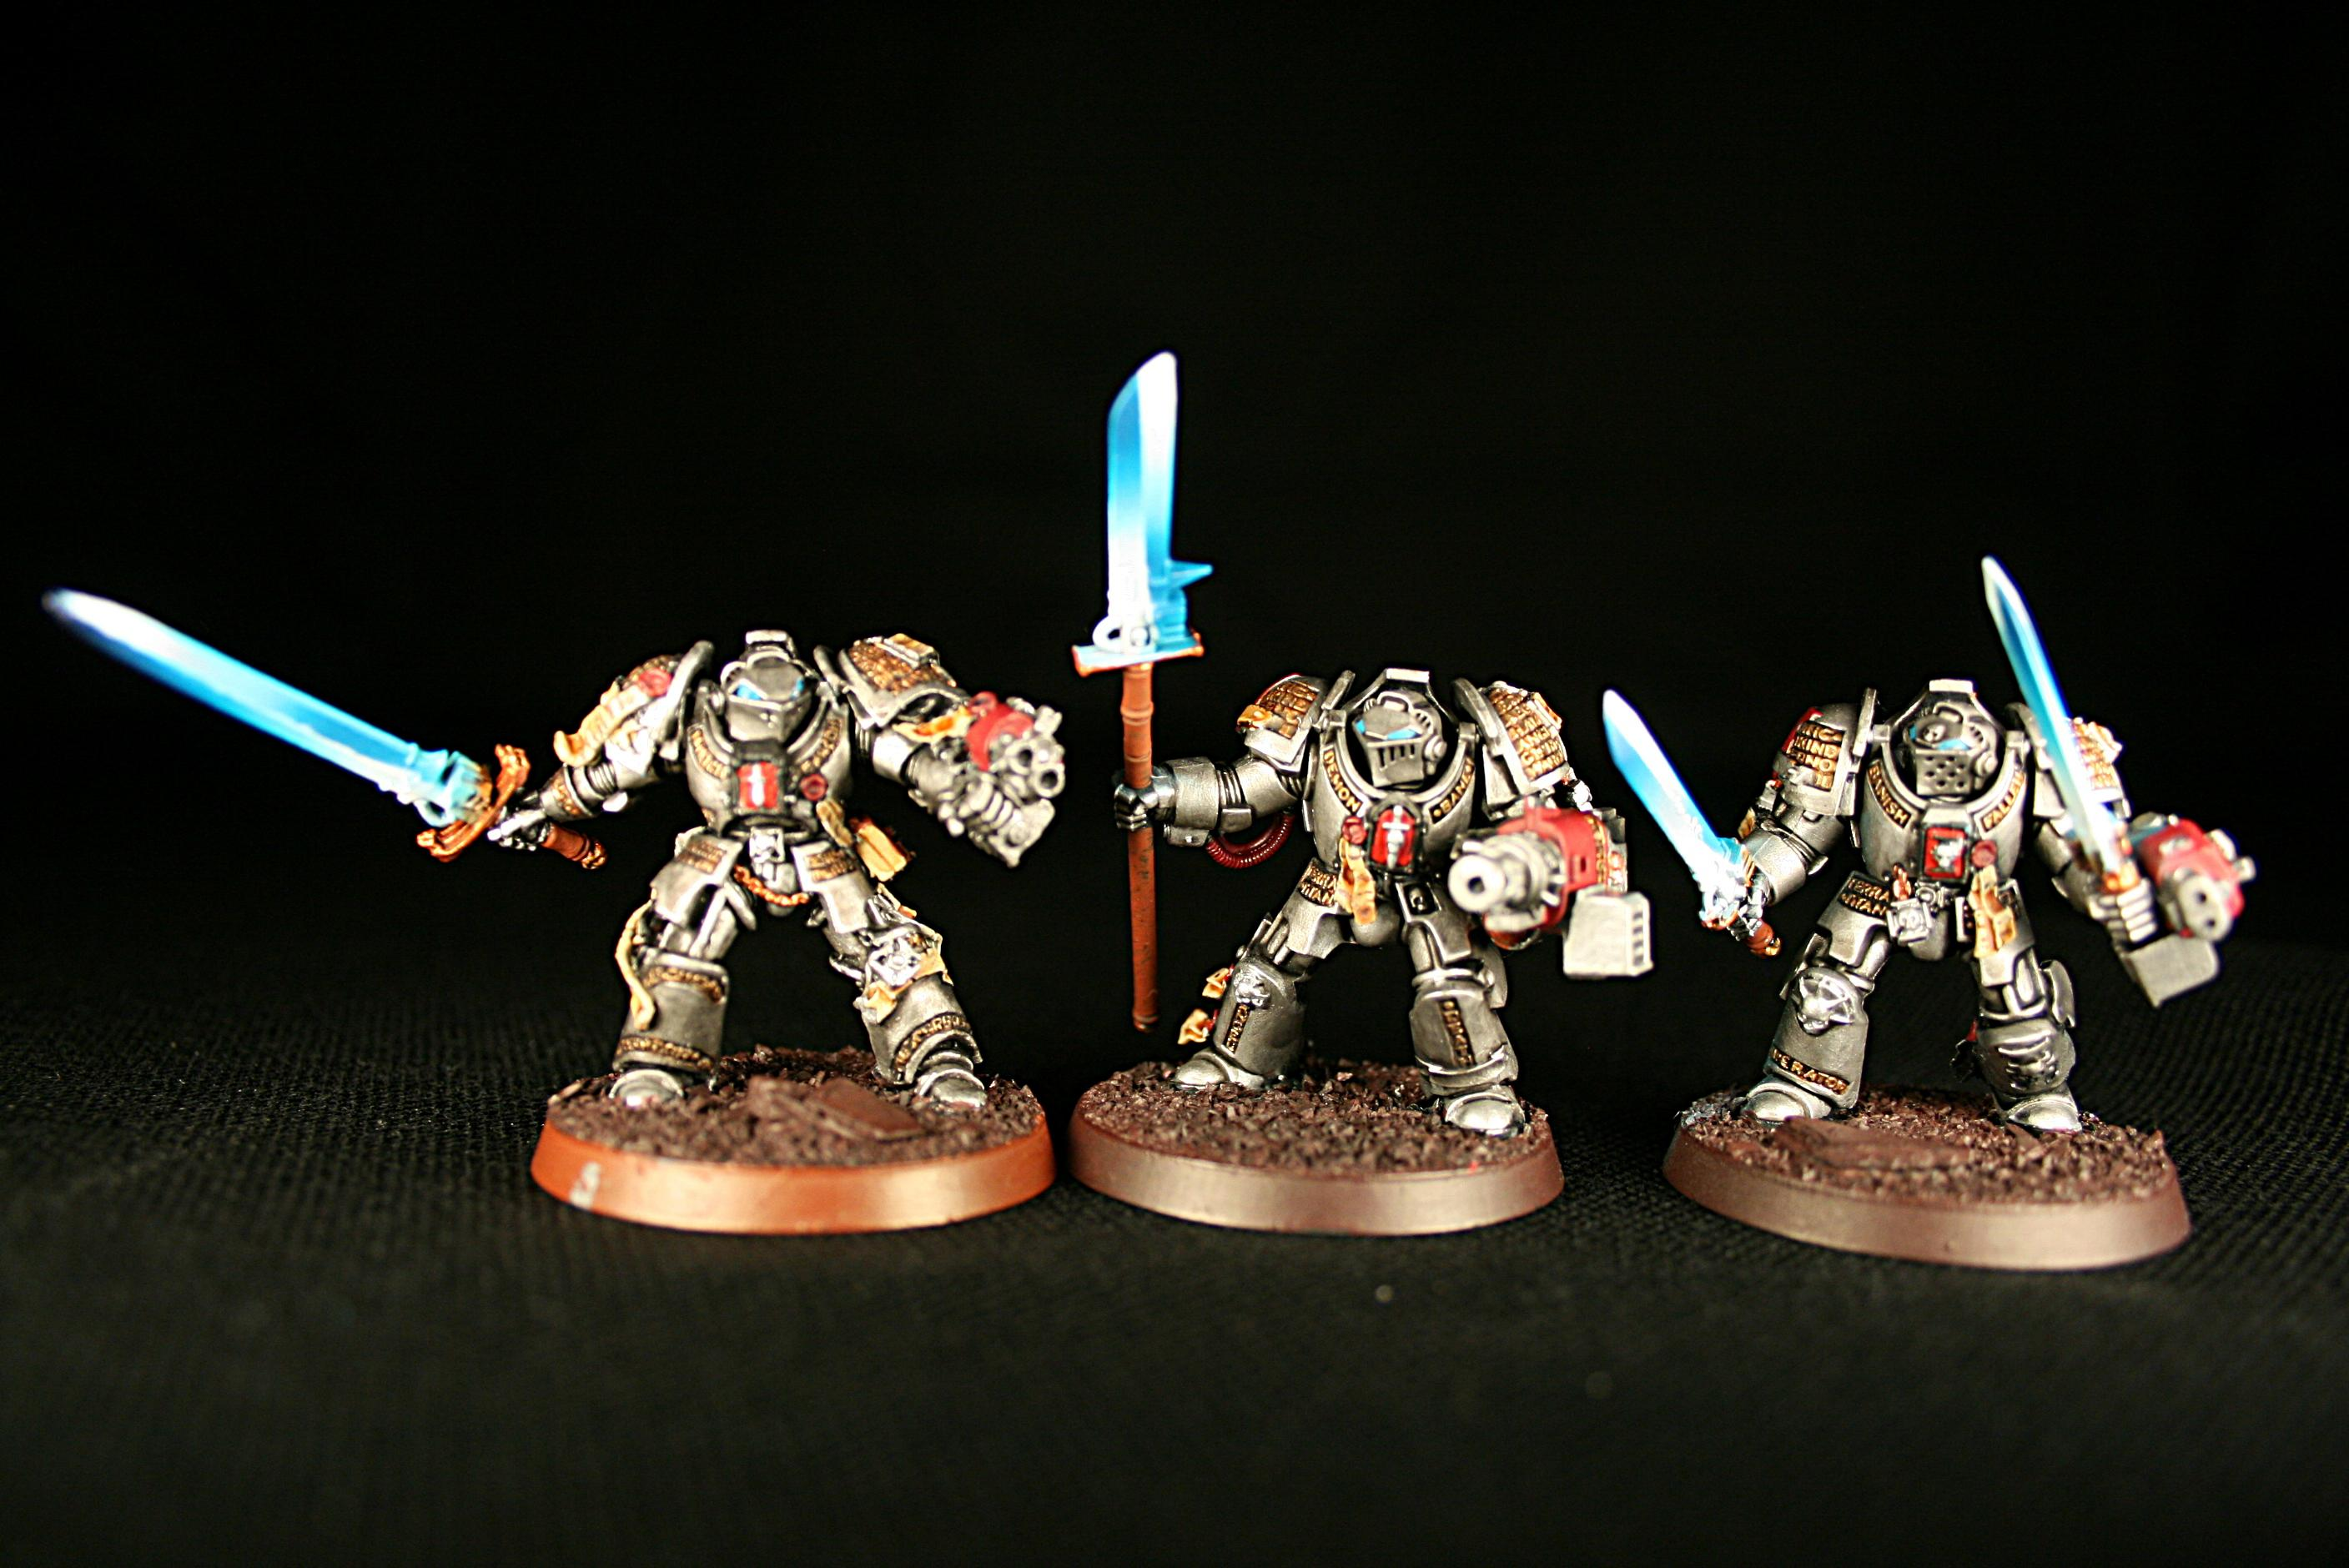 Force Weapons, Grey Knight Terminators, Grey Knights, Terminator Armor